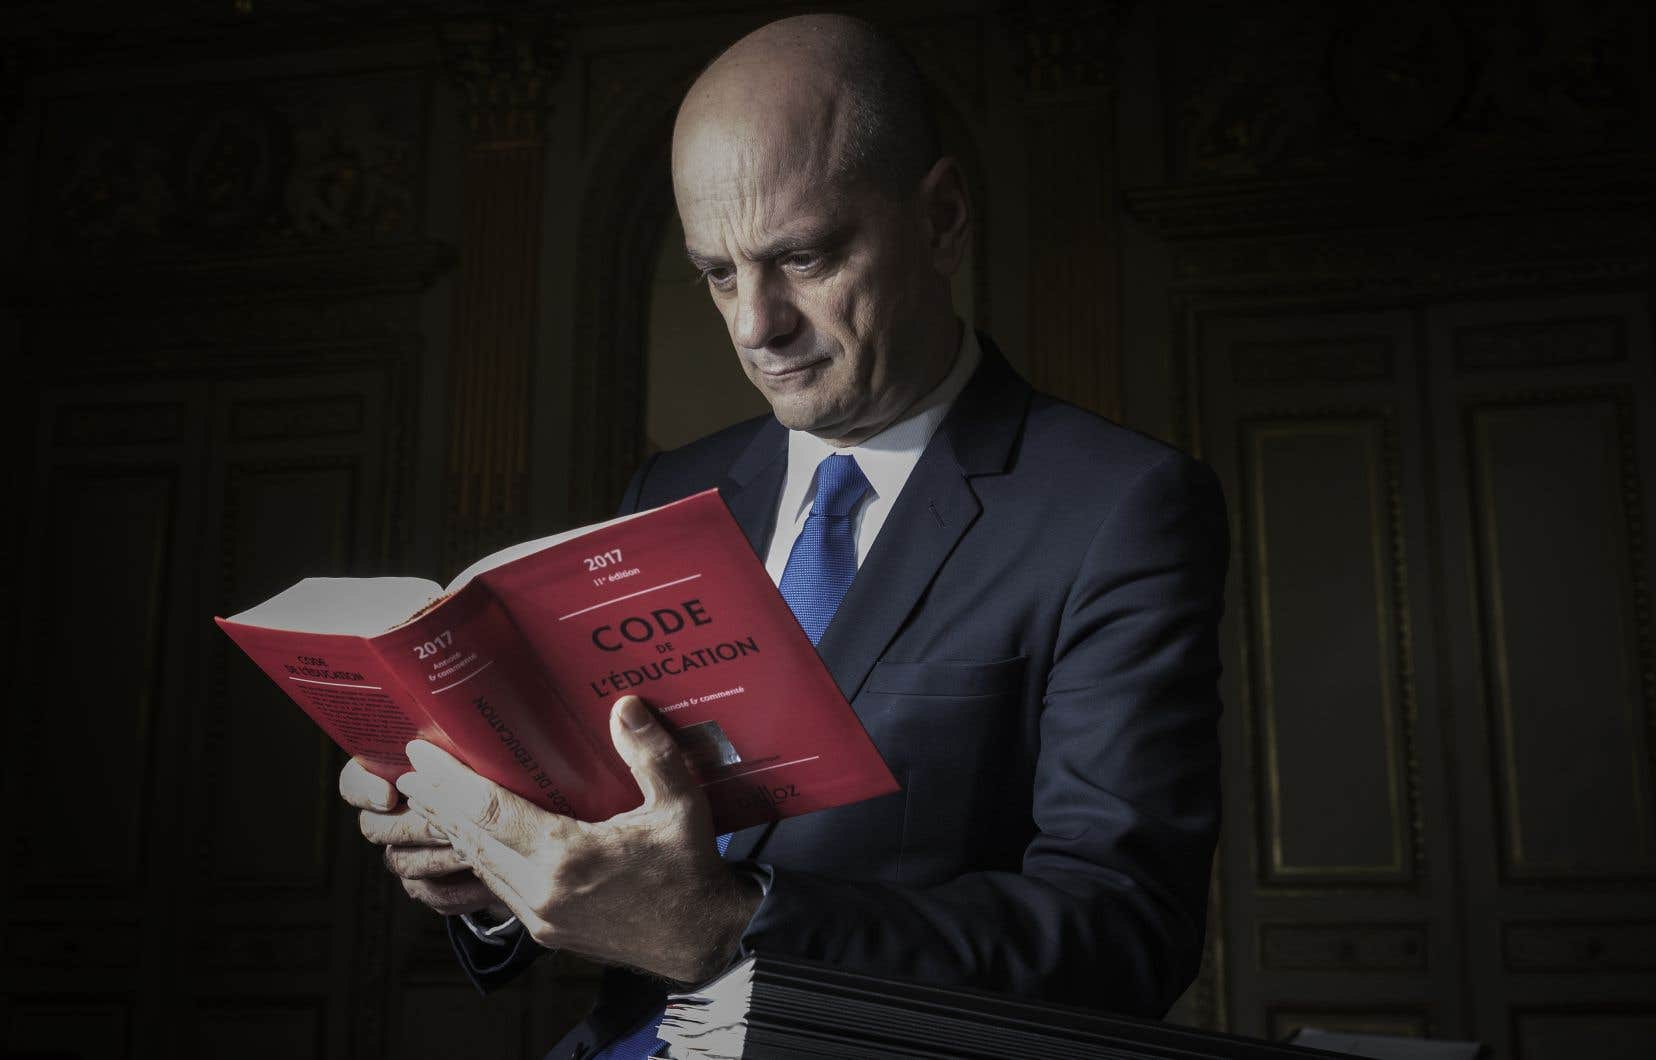 Le ministre français de l'Éducation nationale, Jean-Michel Blanquer